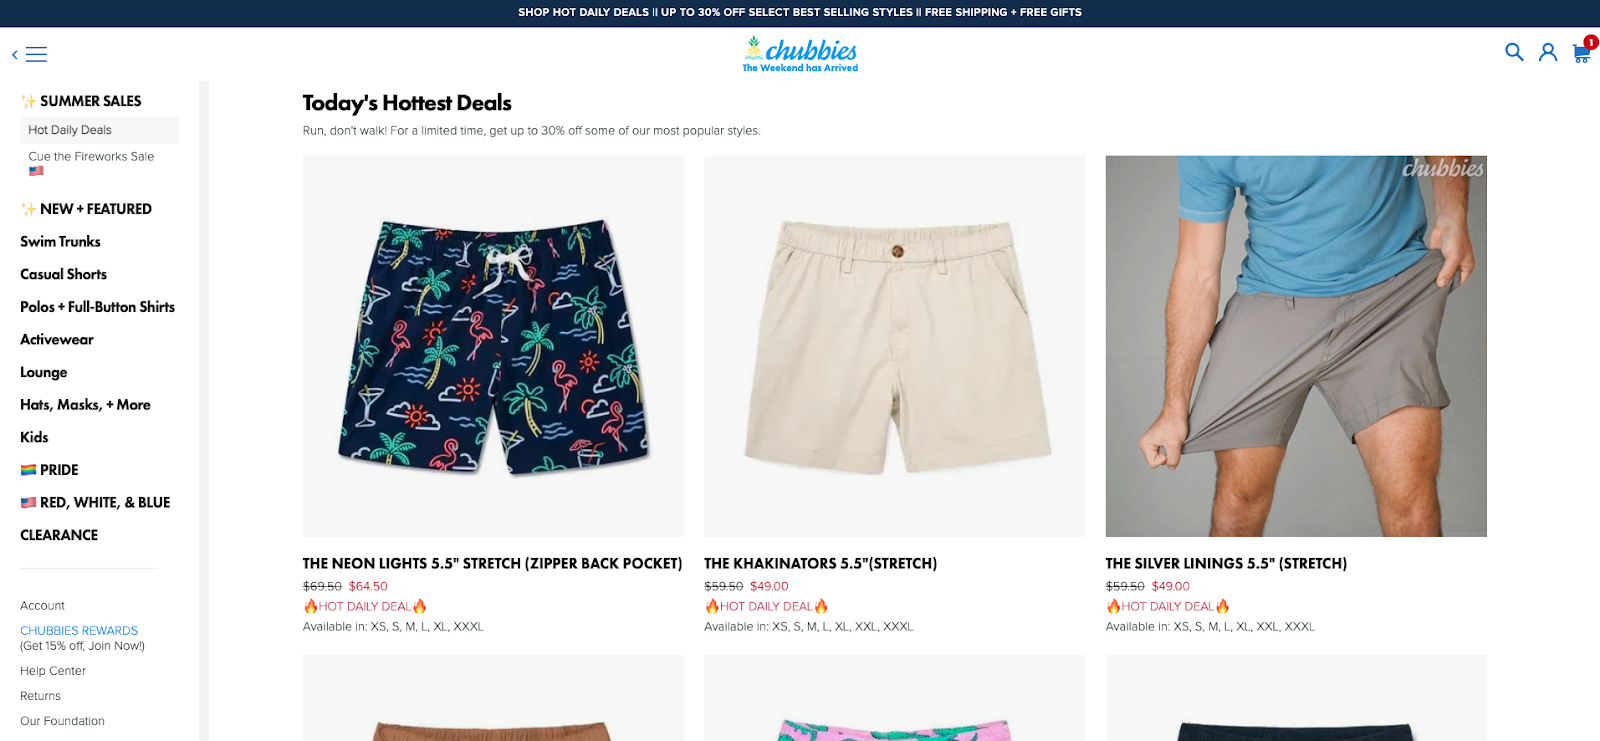 Chubbies sales page